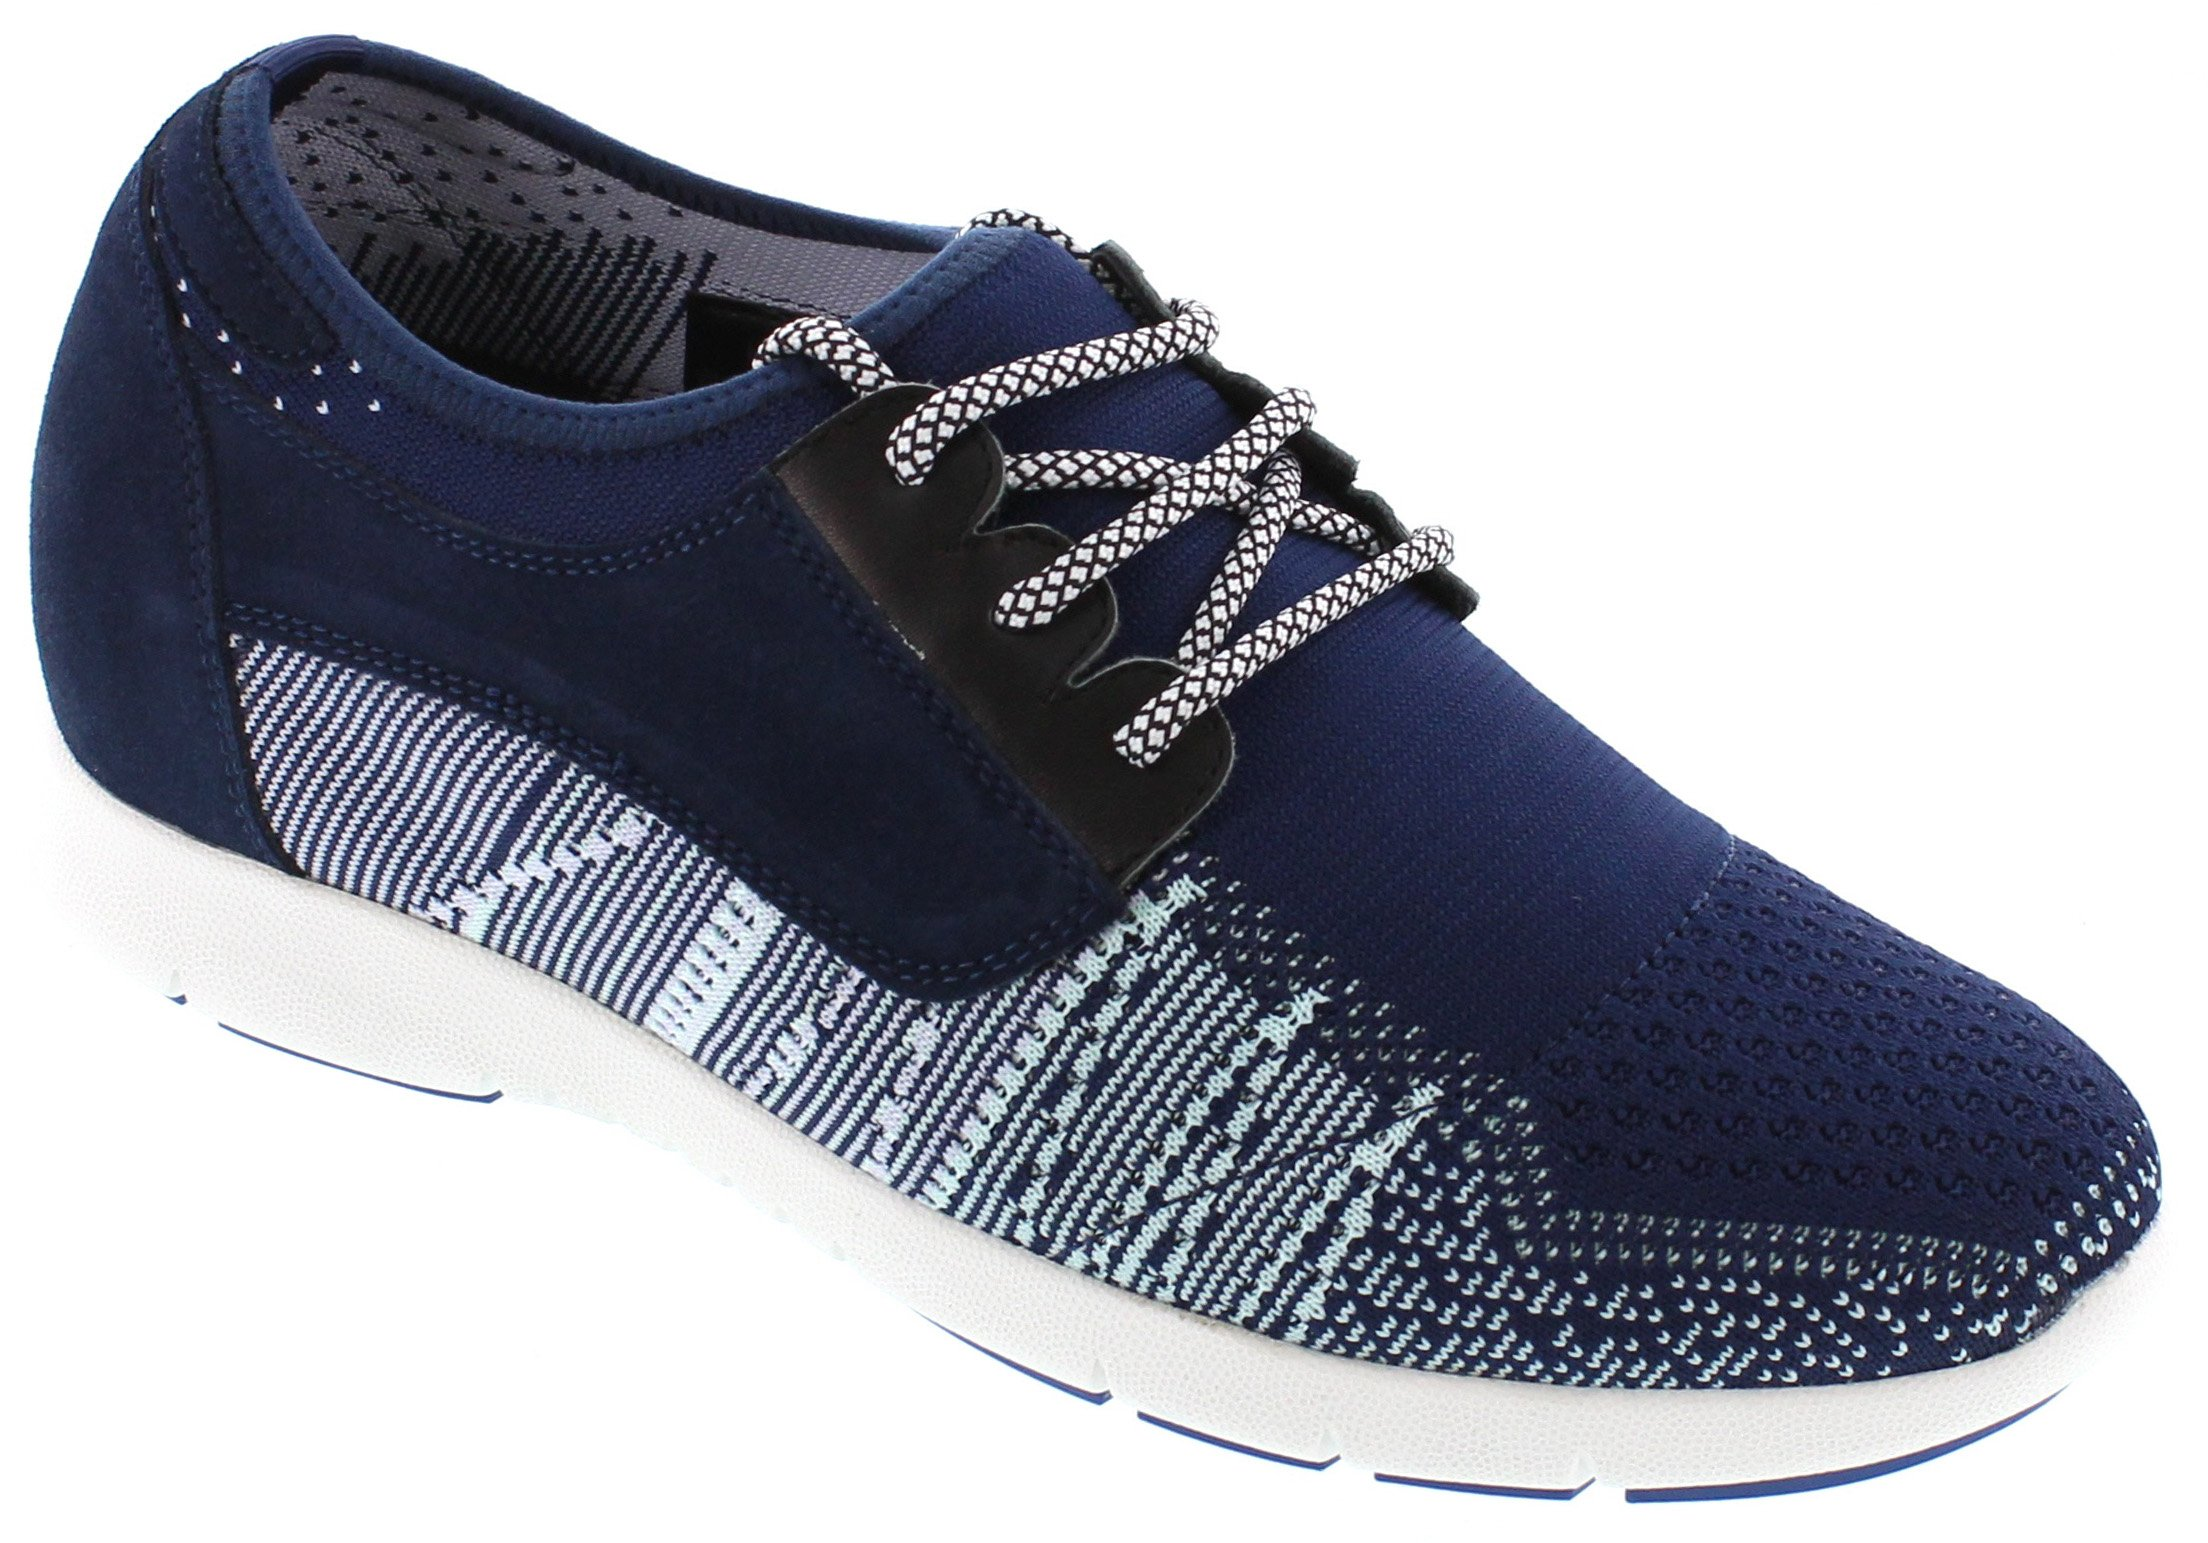 TOTO D62107-2.8 inches Taller - Size 9 D US - height Increasing Elevator Shoes - Navy Blue Lace-up Super Lightweight Sneaker